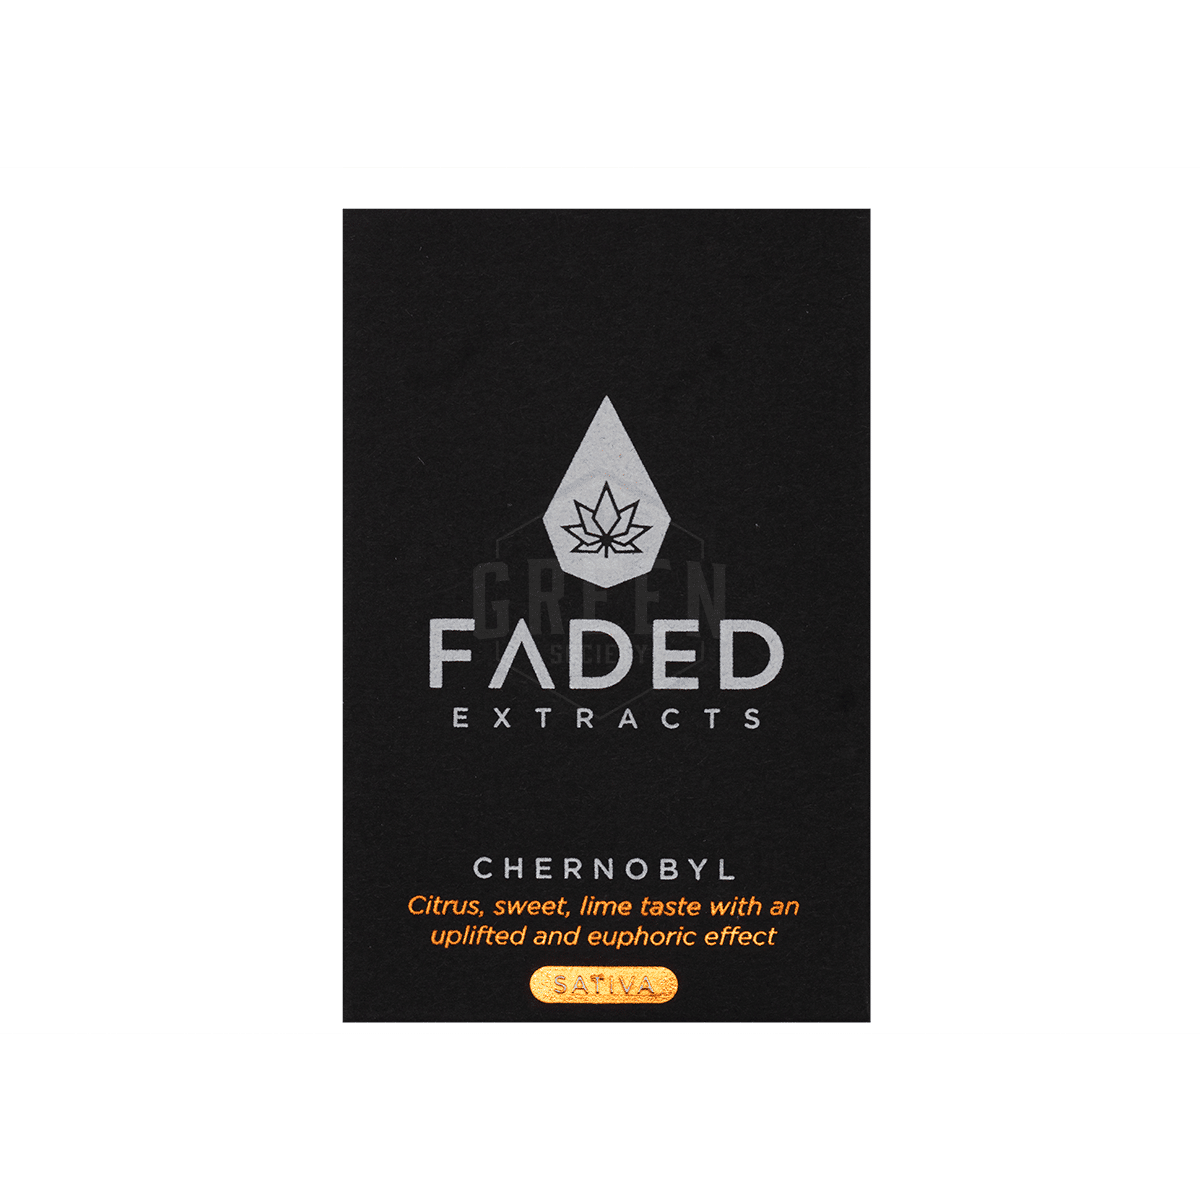 Chernobyl Shatter by Faded Extracts by Green Society - Image © 2018 Green Society. All Rights Reserved.